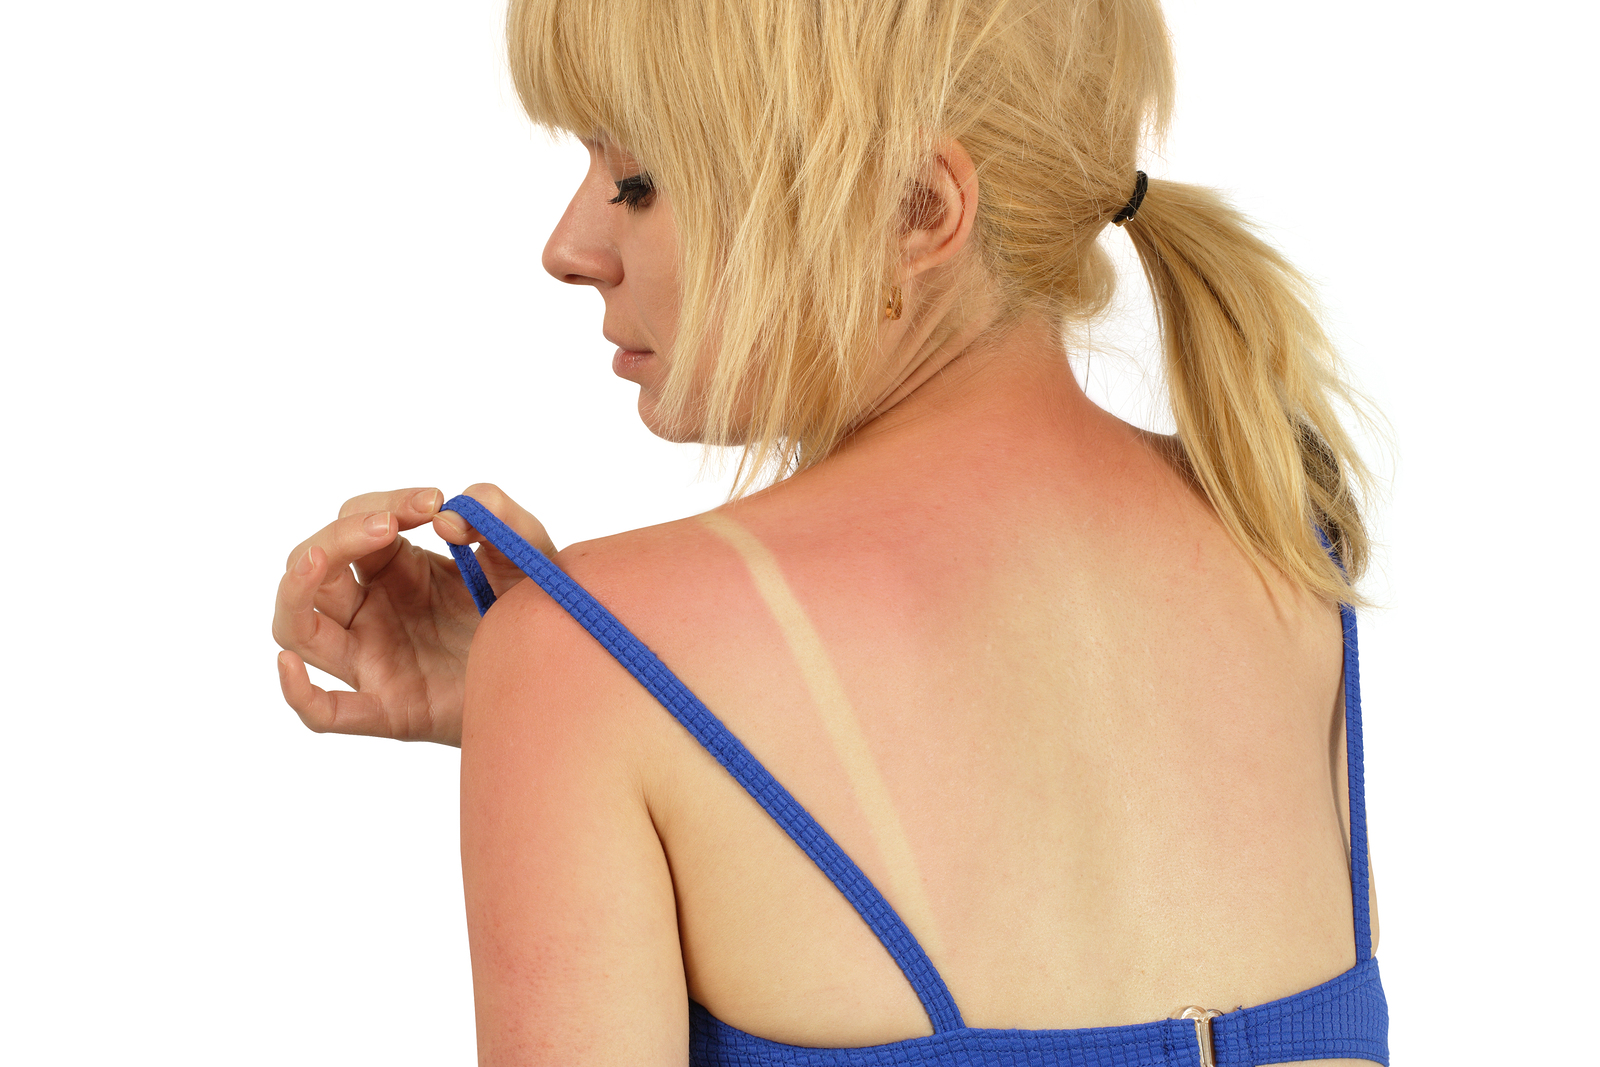 Here are 5 sunburn remedies that actually work to soothe the burn, naturally.